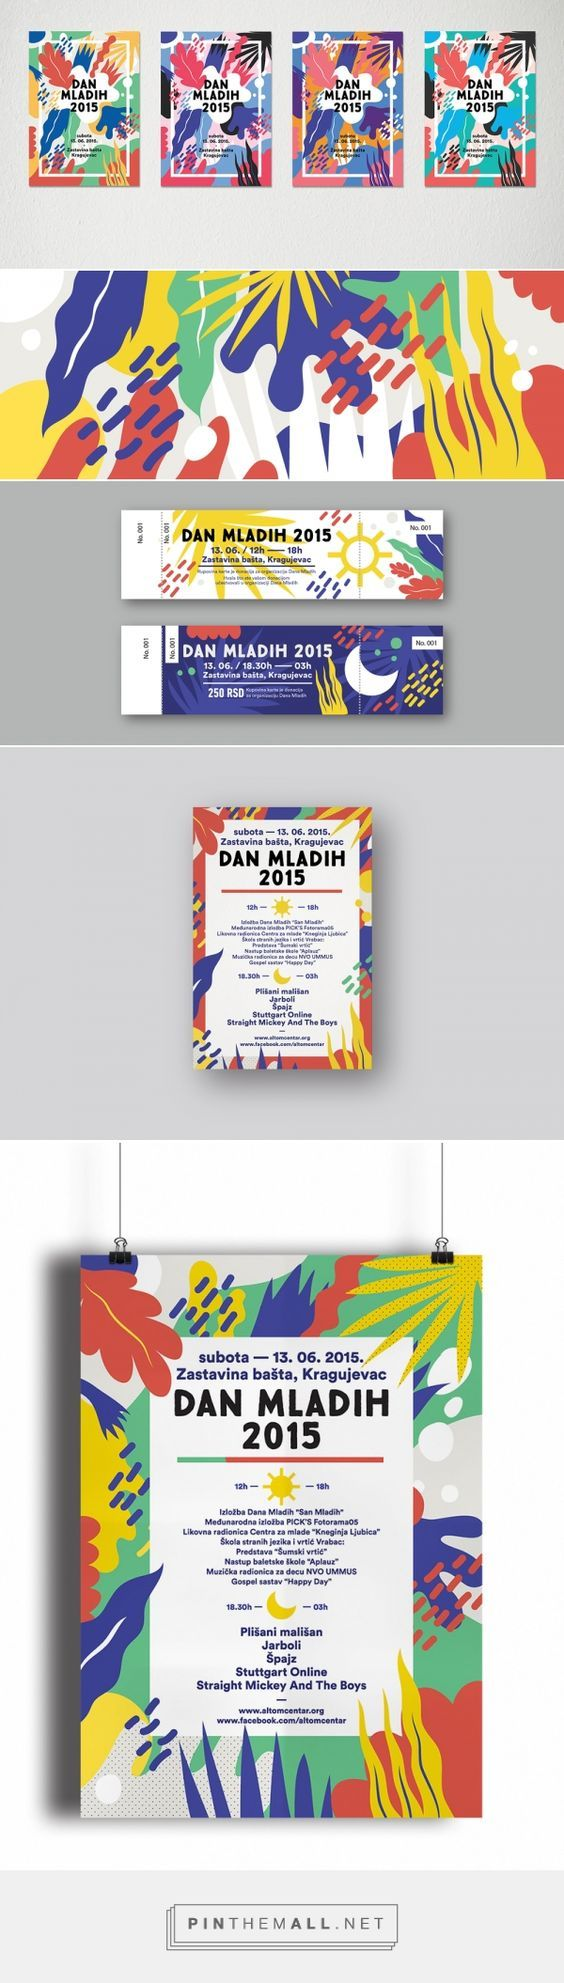 Dan Mladih 2015 Branding by Monika Lang | Fivestar Branding – Design and Branding Agency & Inspiration Gallery